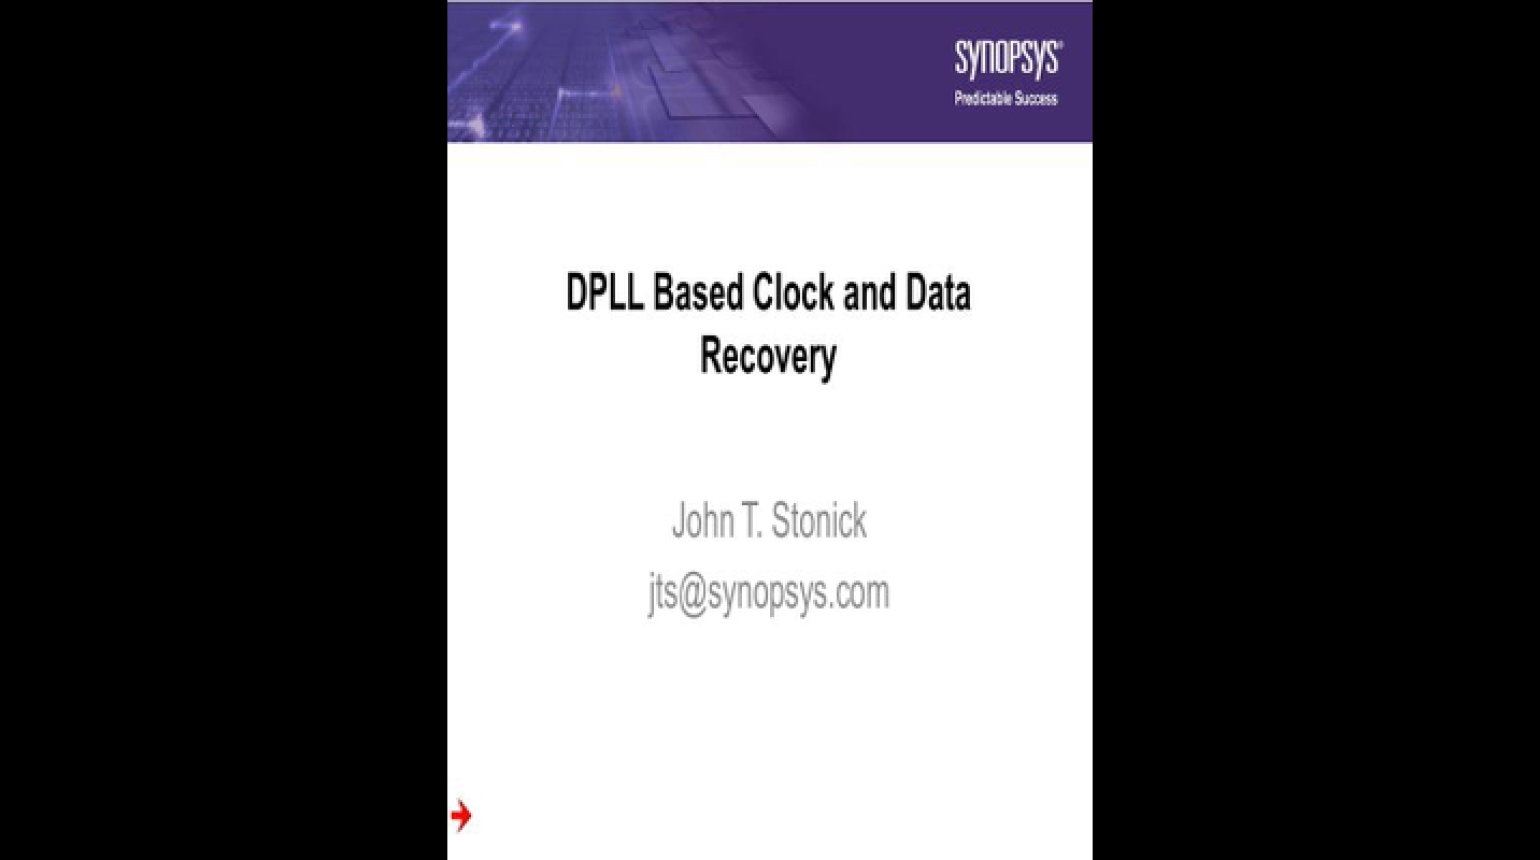 DPLL Based Clock and Data Recovery Video